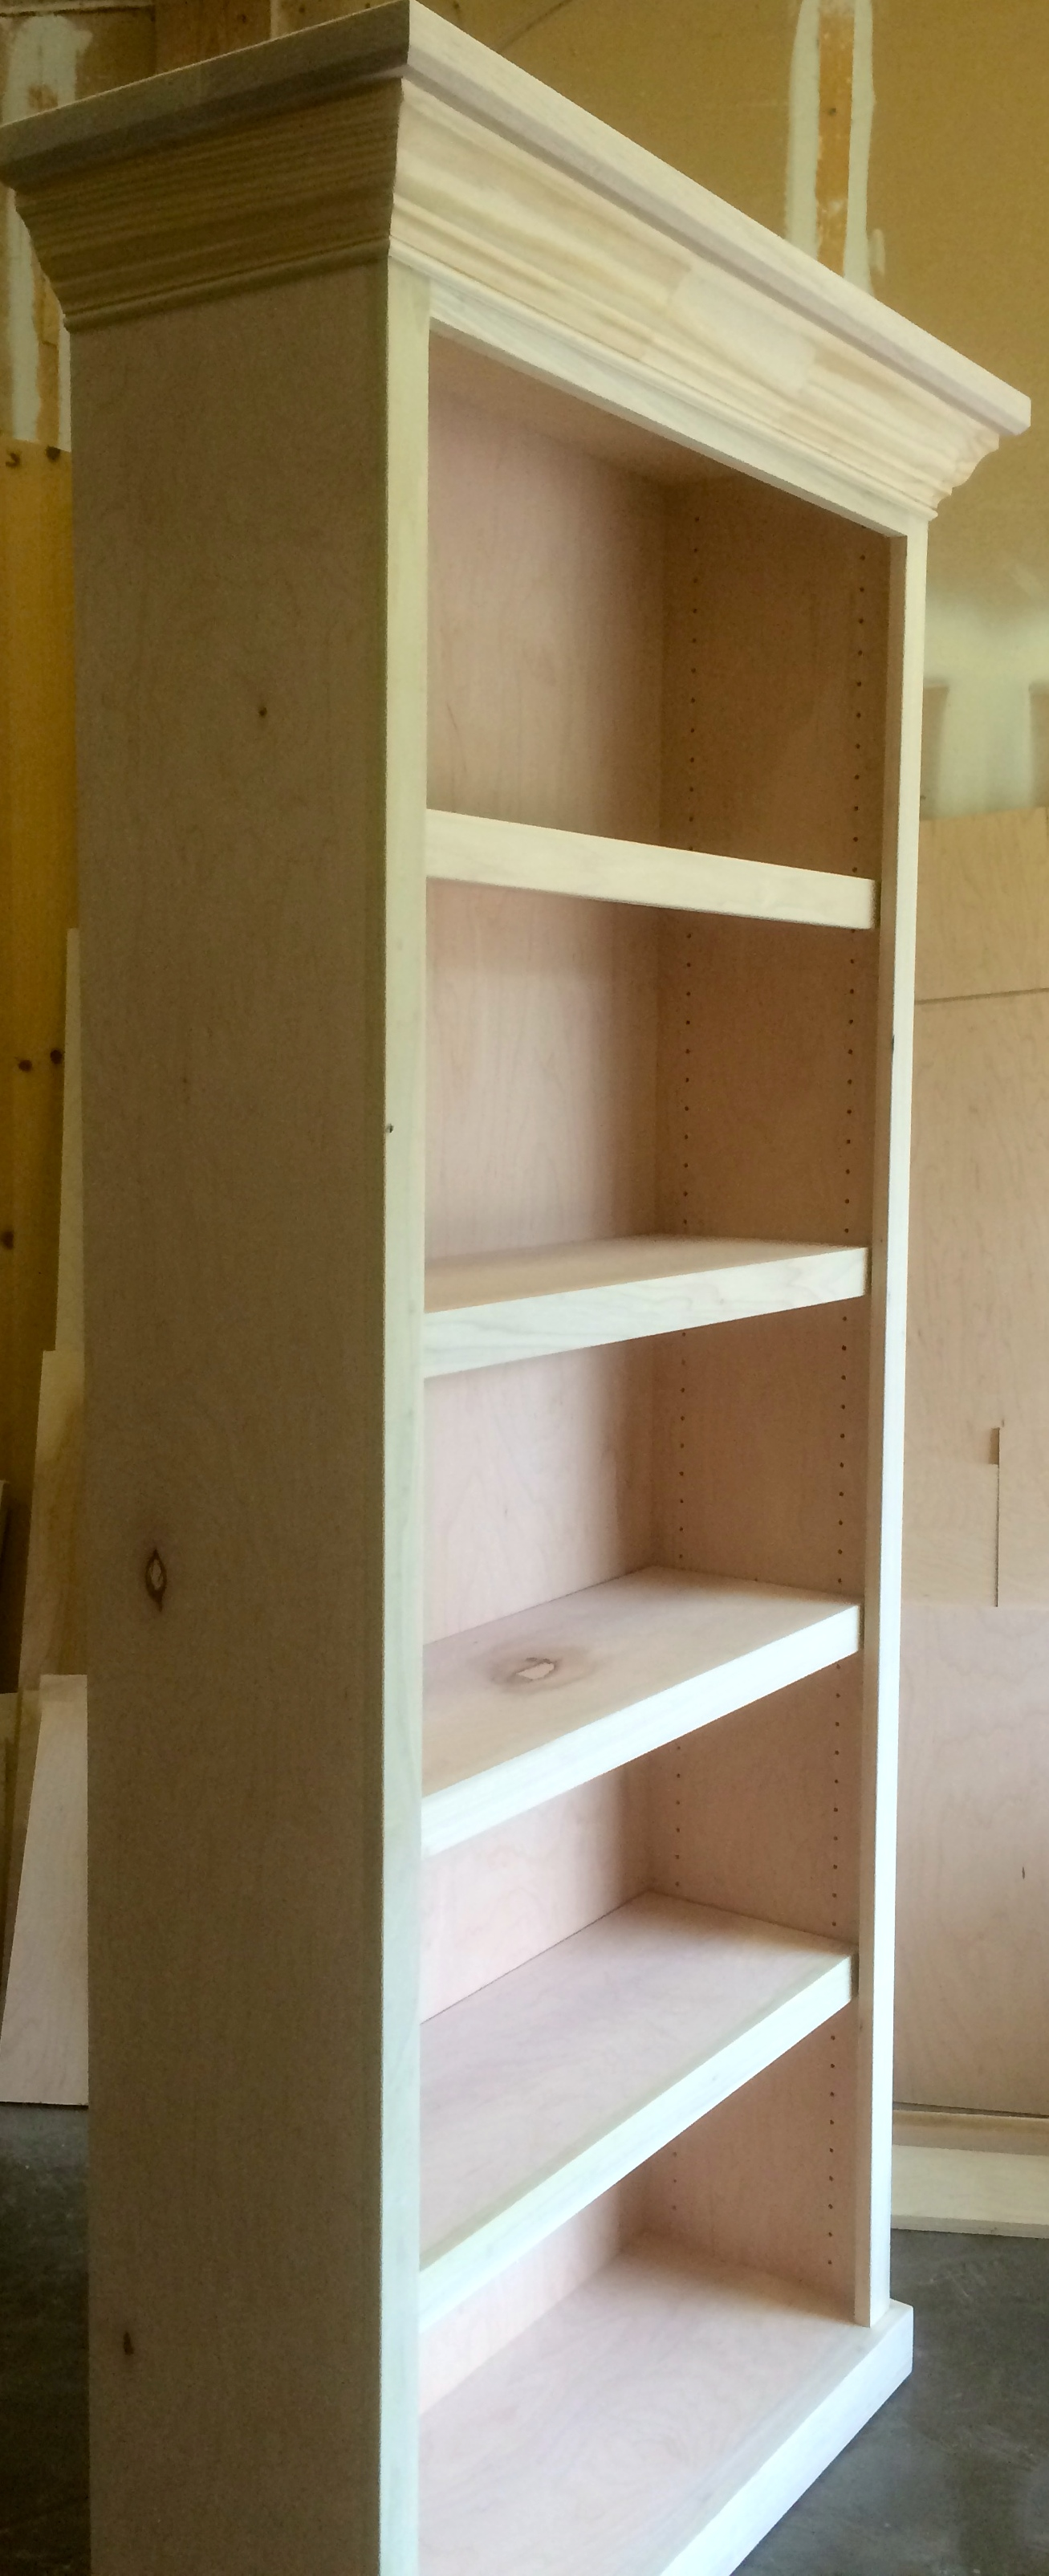 Traditional Free Standing Bookcase with Adjustable Shelves and Crown Molding